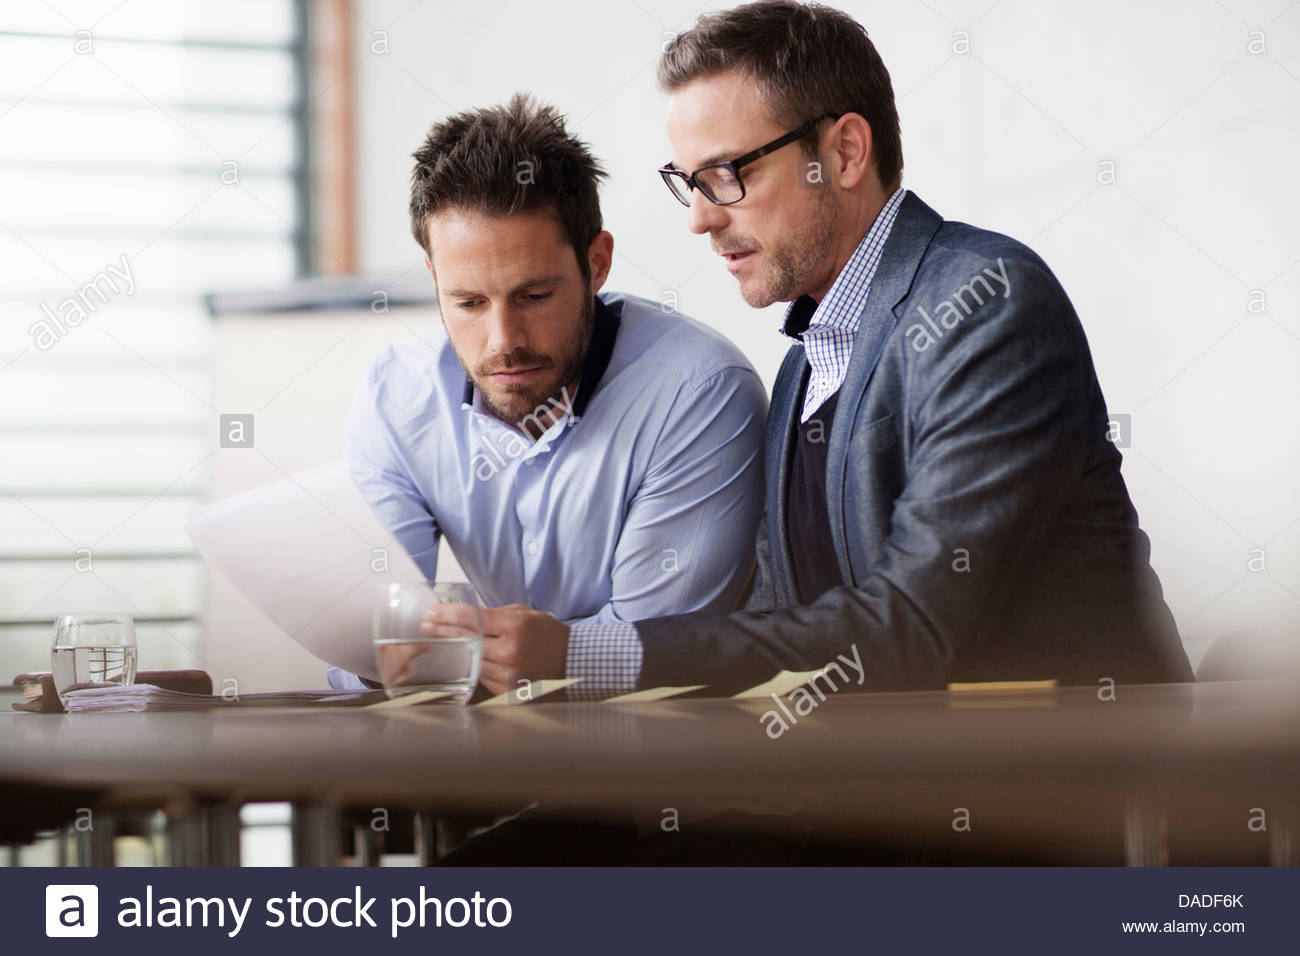 Deux hommes en discussion sérieuse Photo Stock